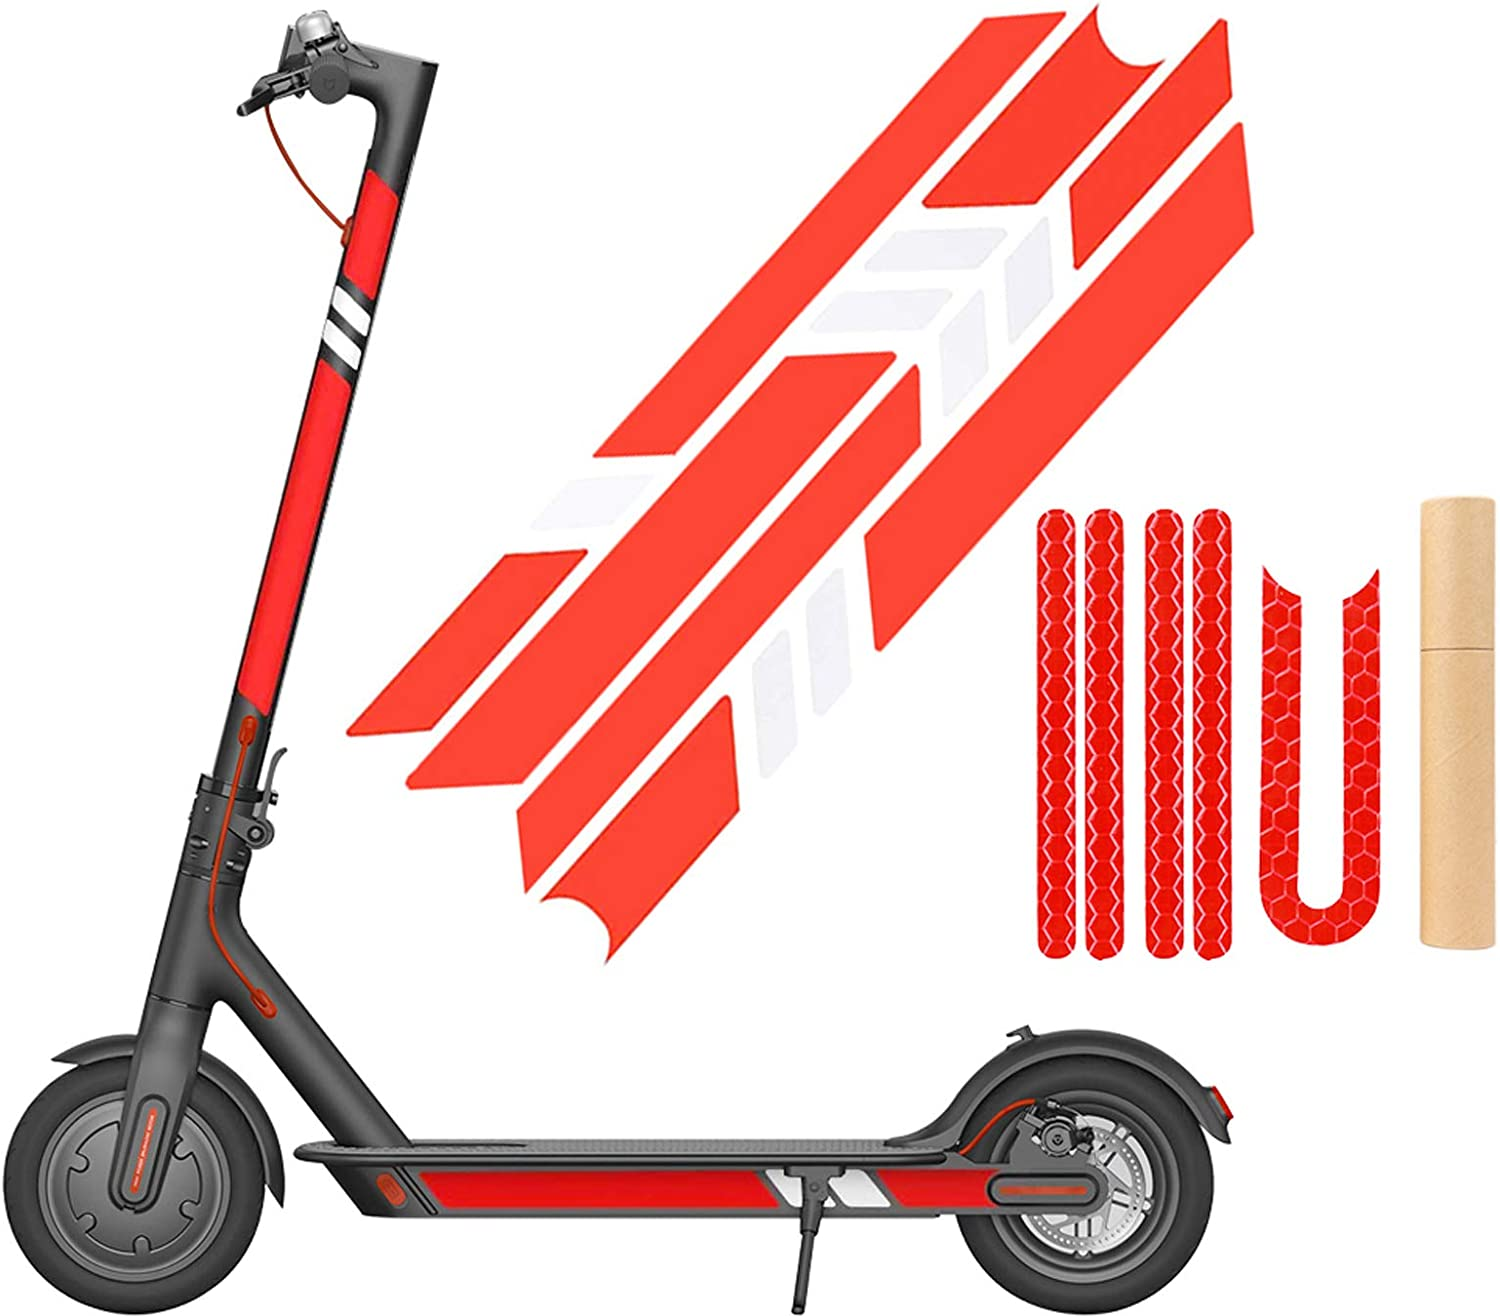 SGMY Scooter Reflective Sticker Waterproof Reflective Decals Decorative For Xiaomi Mijia M365 E-Scooter and Ninebot Es1 Es2 Es4 Electric Scooter Accessories